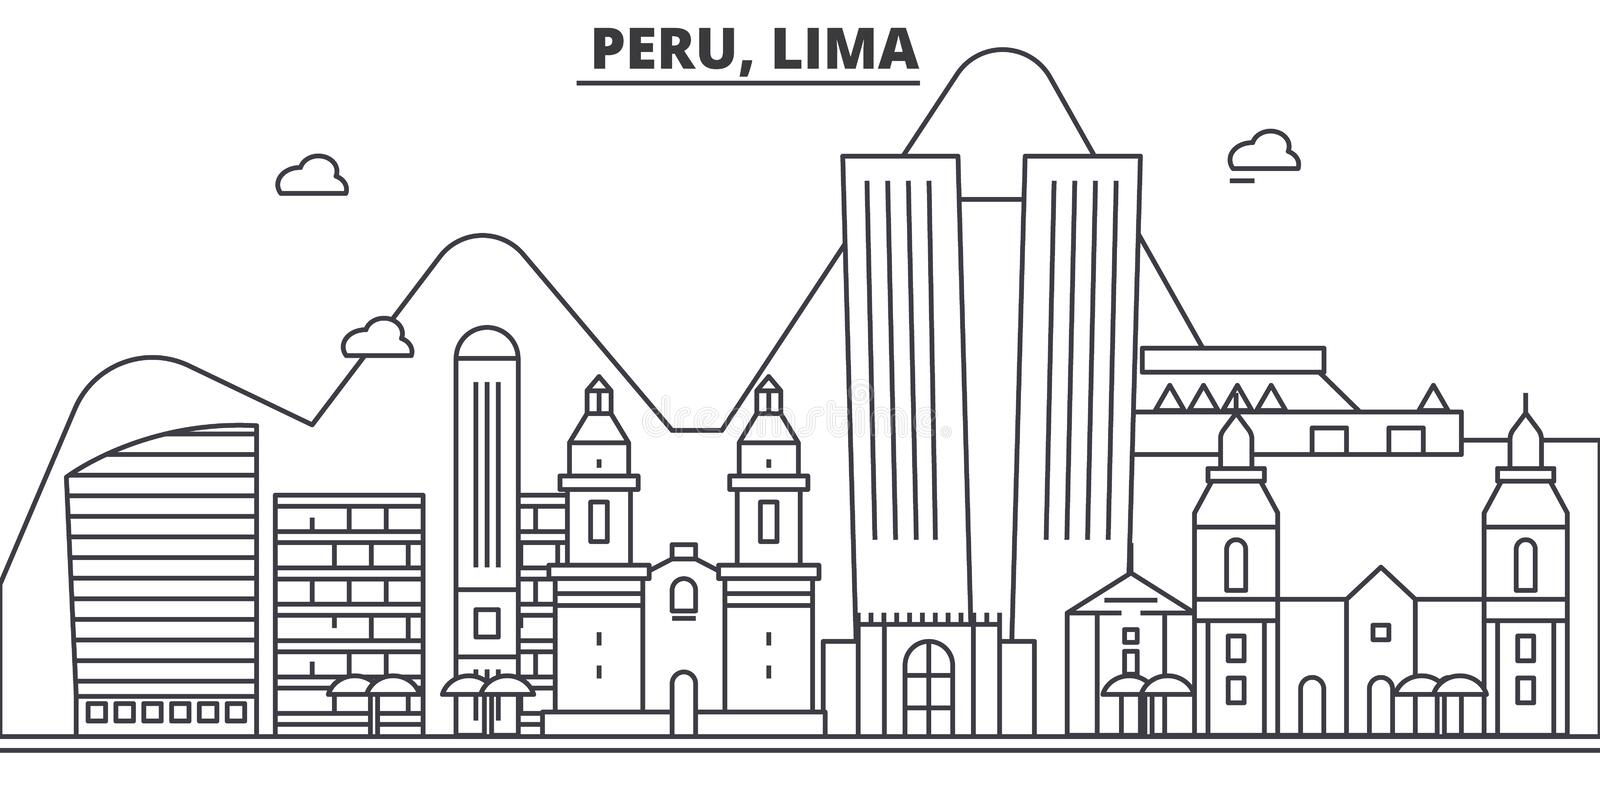 Peru, Lima architecture line skyline illustration. Linear vector cityscape with famous landmarks, city sights, design. Icons. Editable strokes royalty free illustration